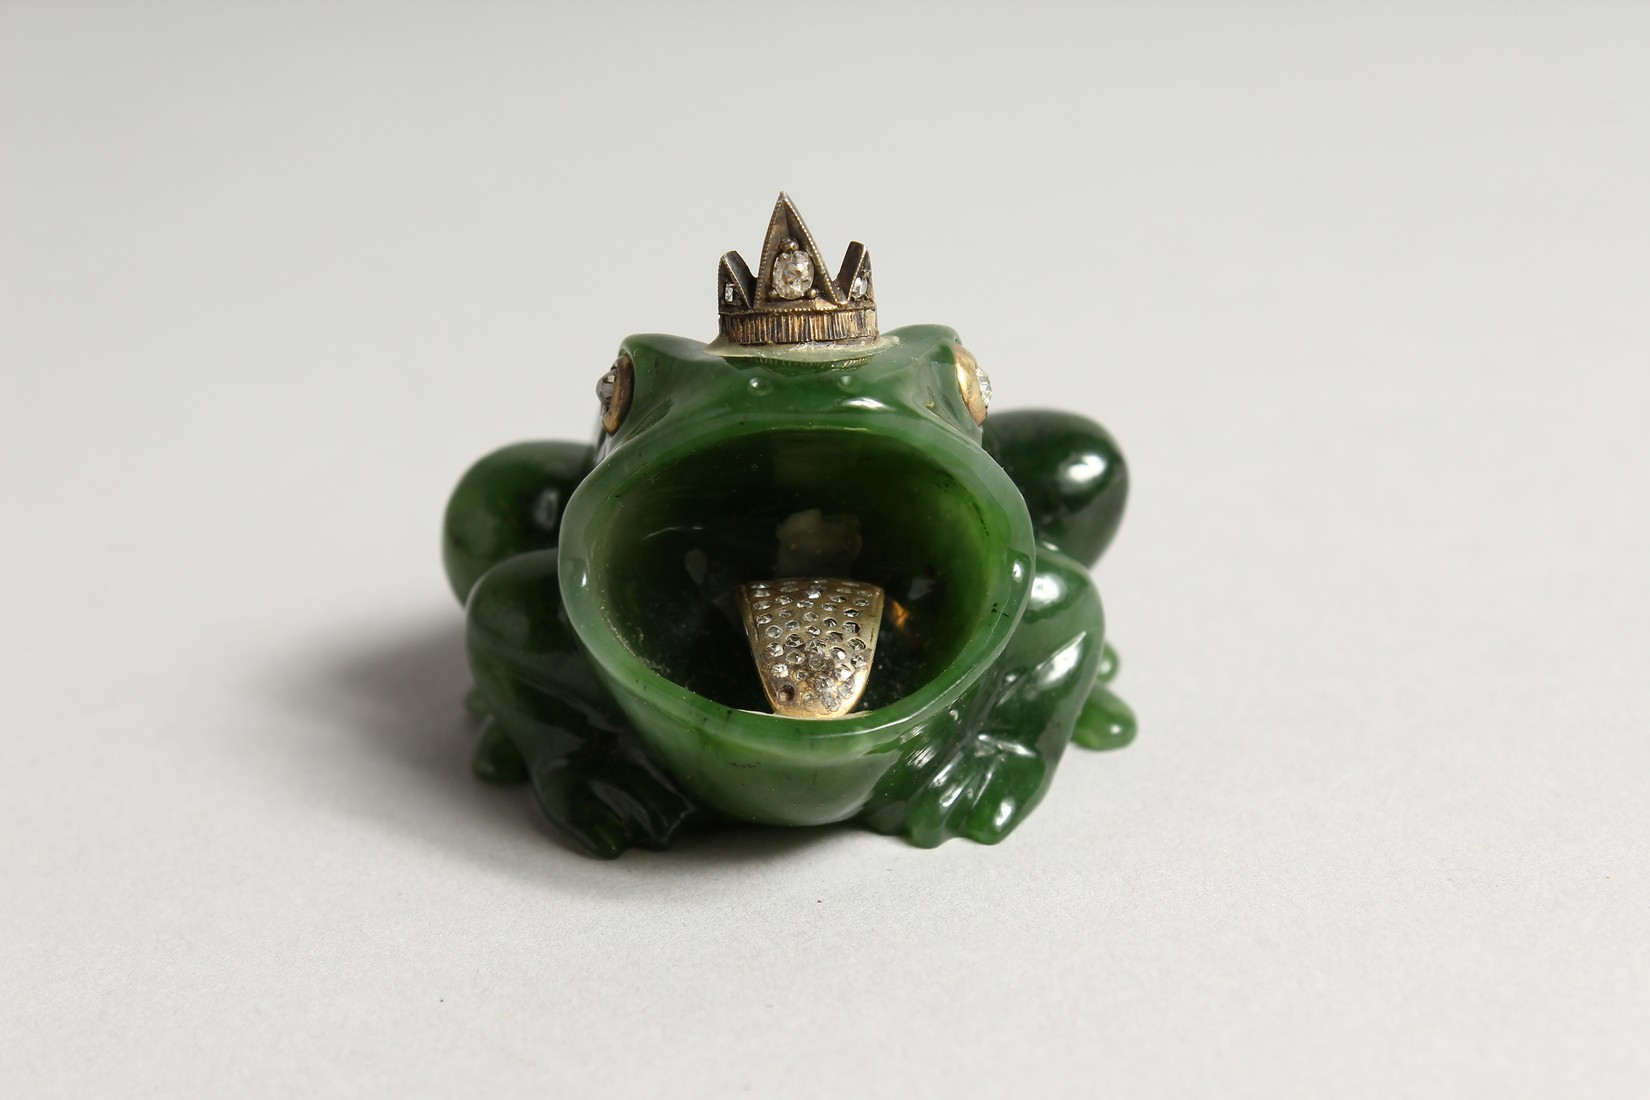 A SUPERB RUSSIAN JADE AND DIAMOND MOUNTED FROG 2ins long - Image 2 of 6